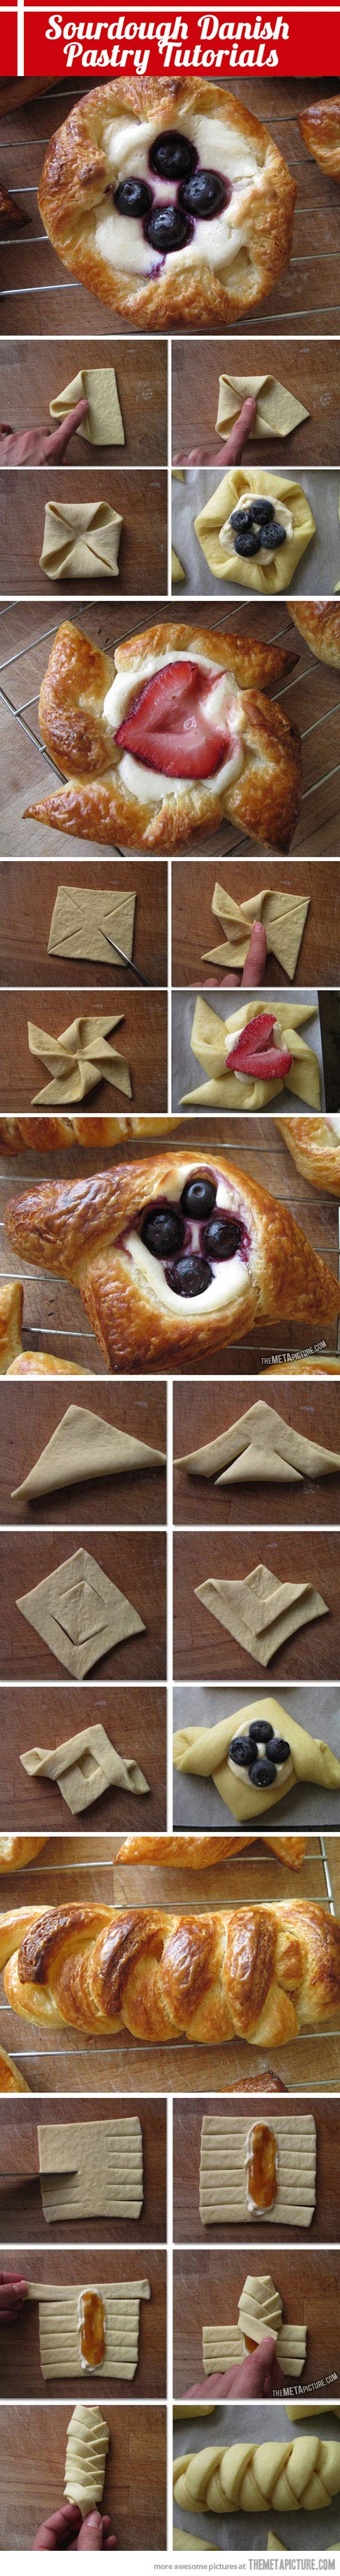 How To Do Pastry Right ... Sourdough Danish Pastry Tutorials